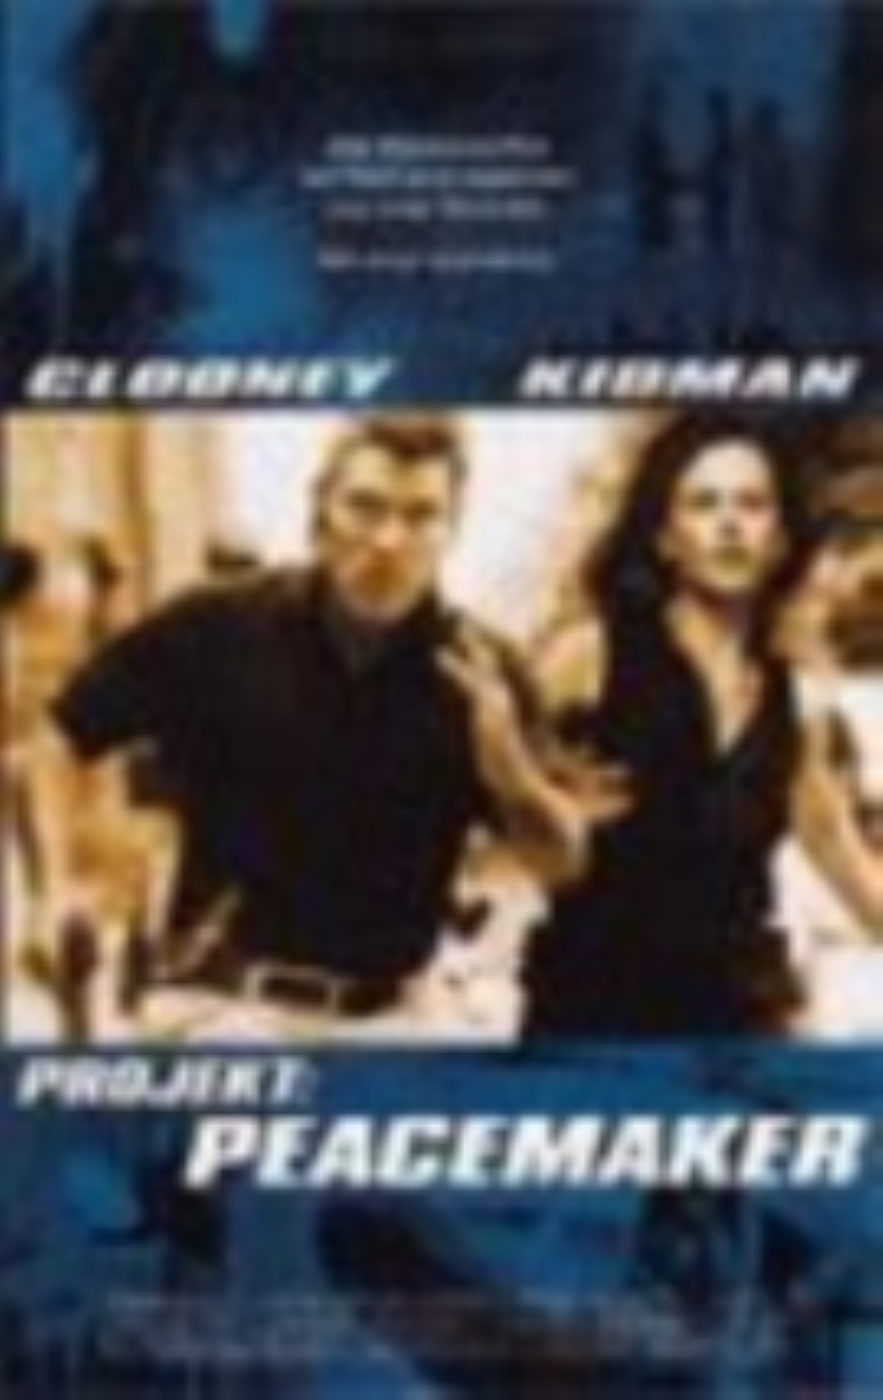 The Peacemaker Vhs